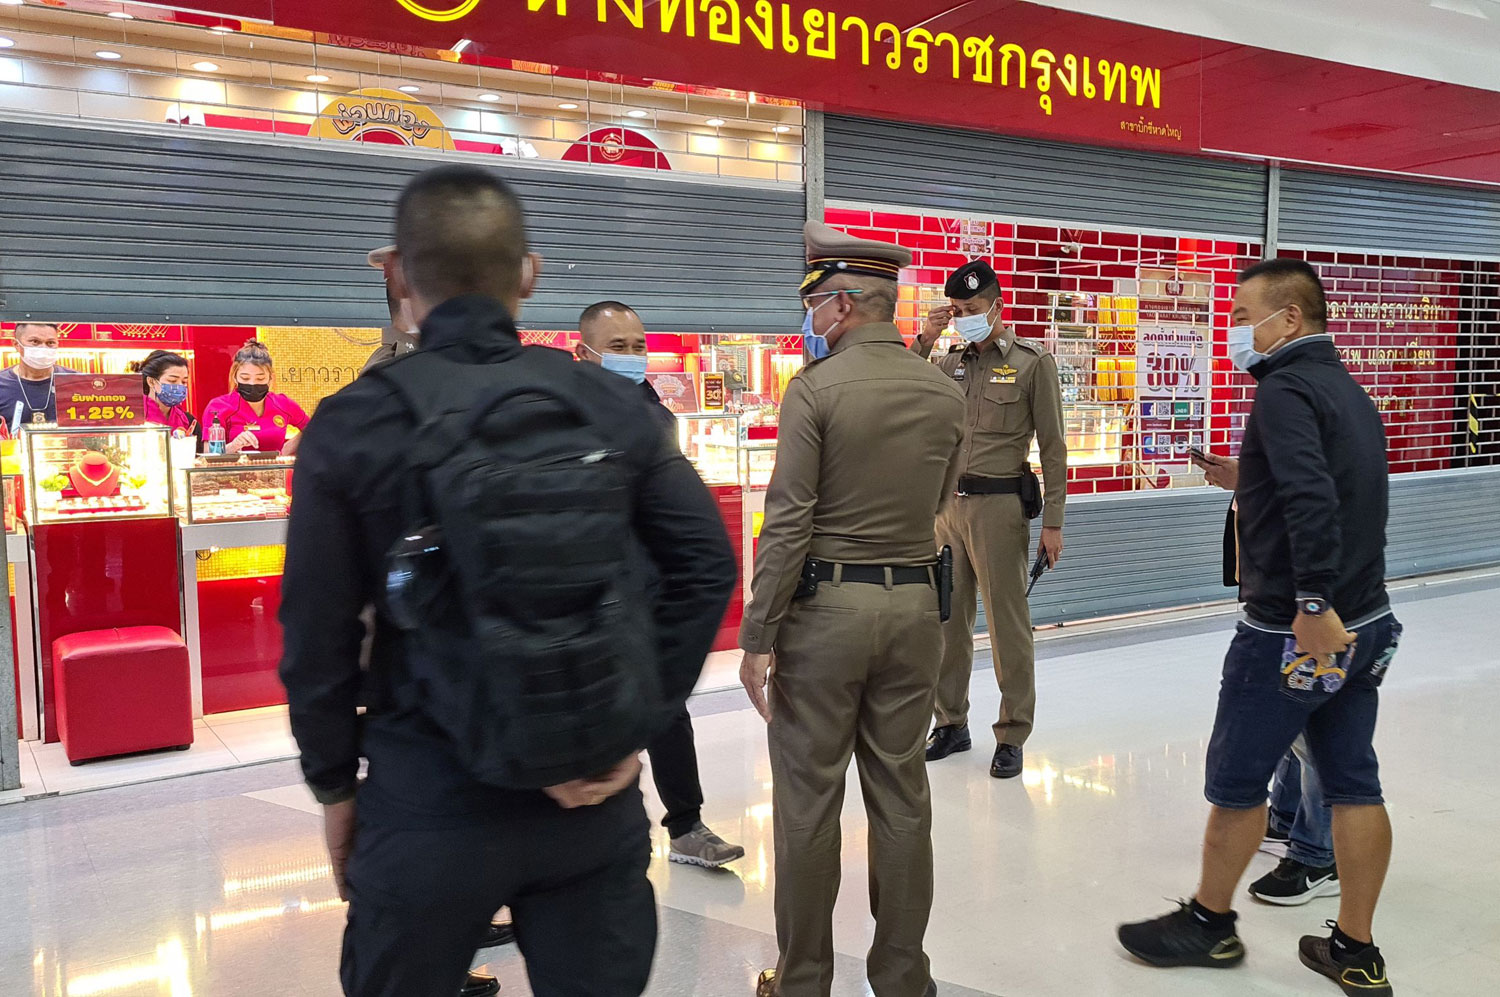 Police question a staffer of the gold shop at the Big C Khlong Hae mall in Hat Yai following a robbery on Saturday afternoon. (Photo: Assawin Pakkawan)